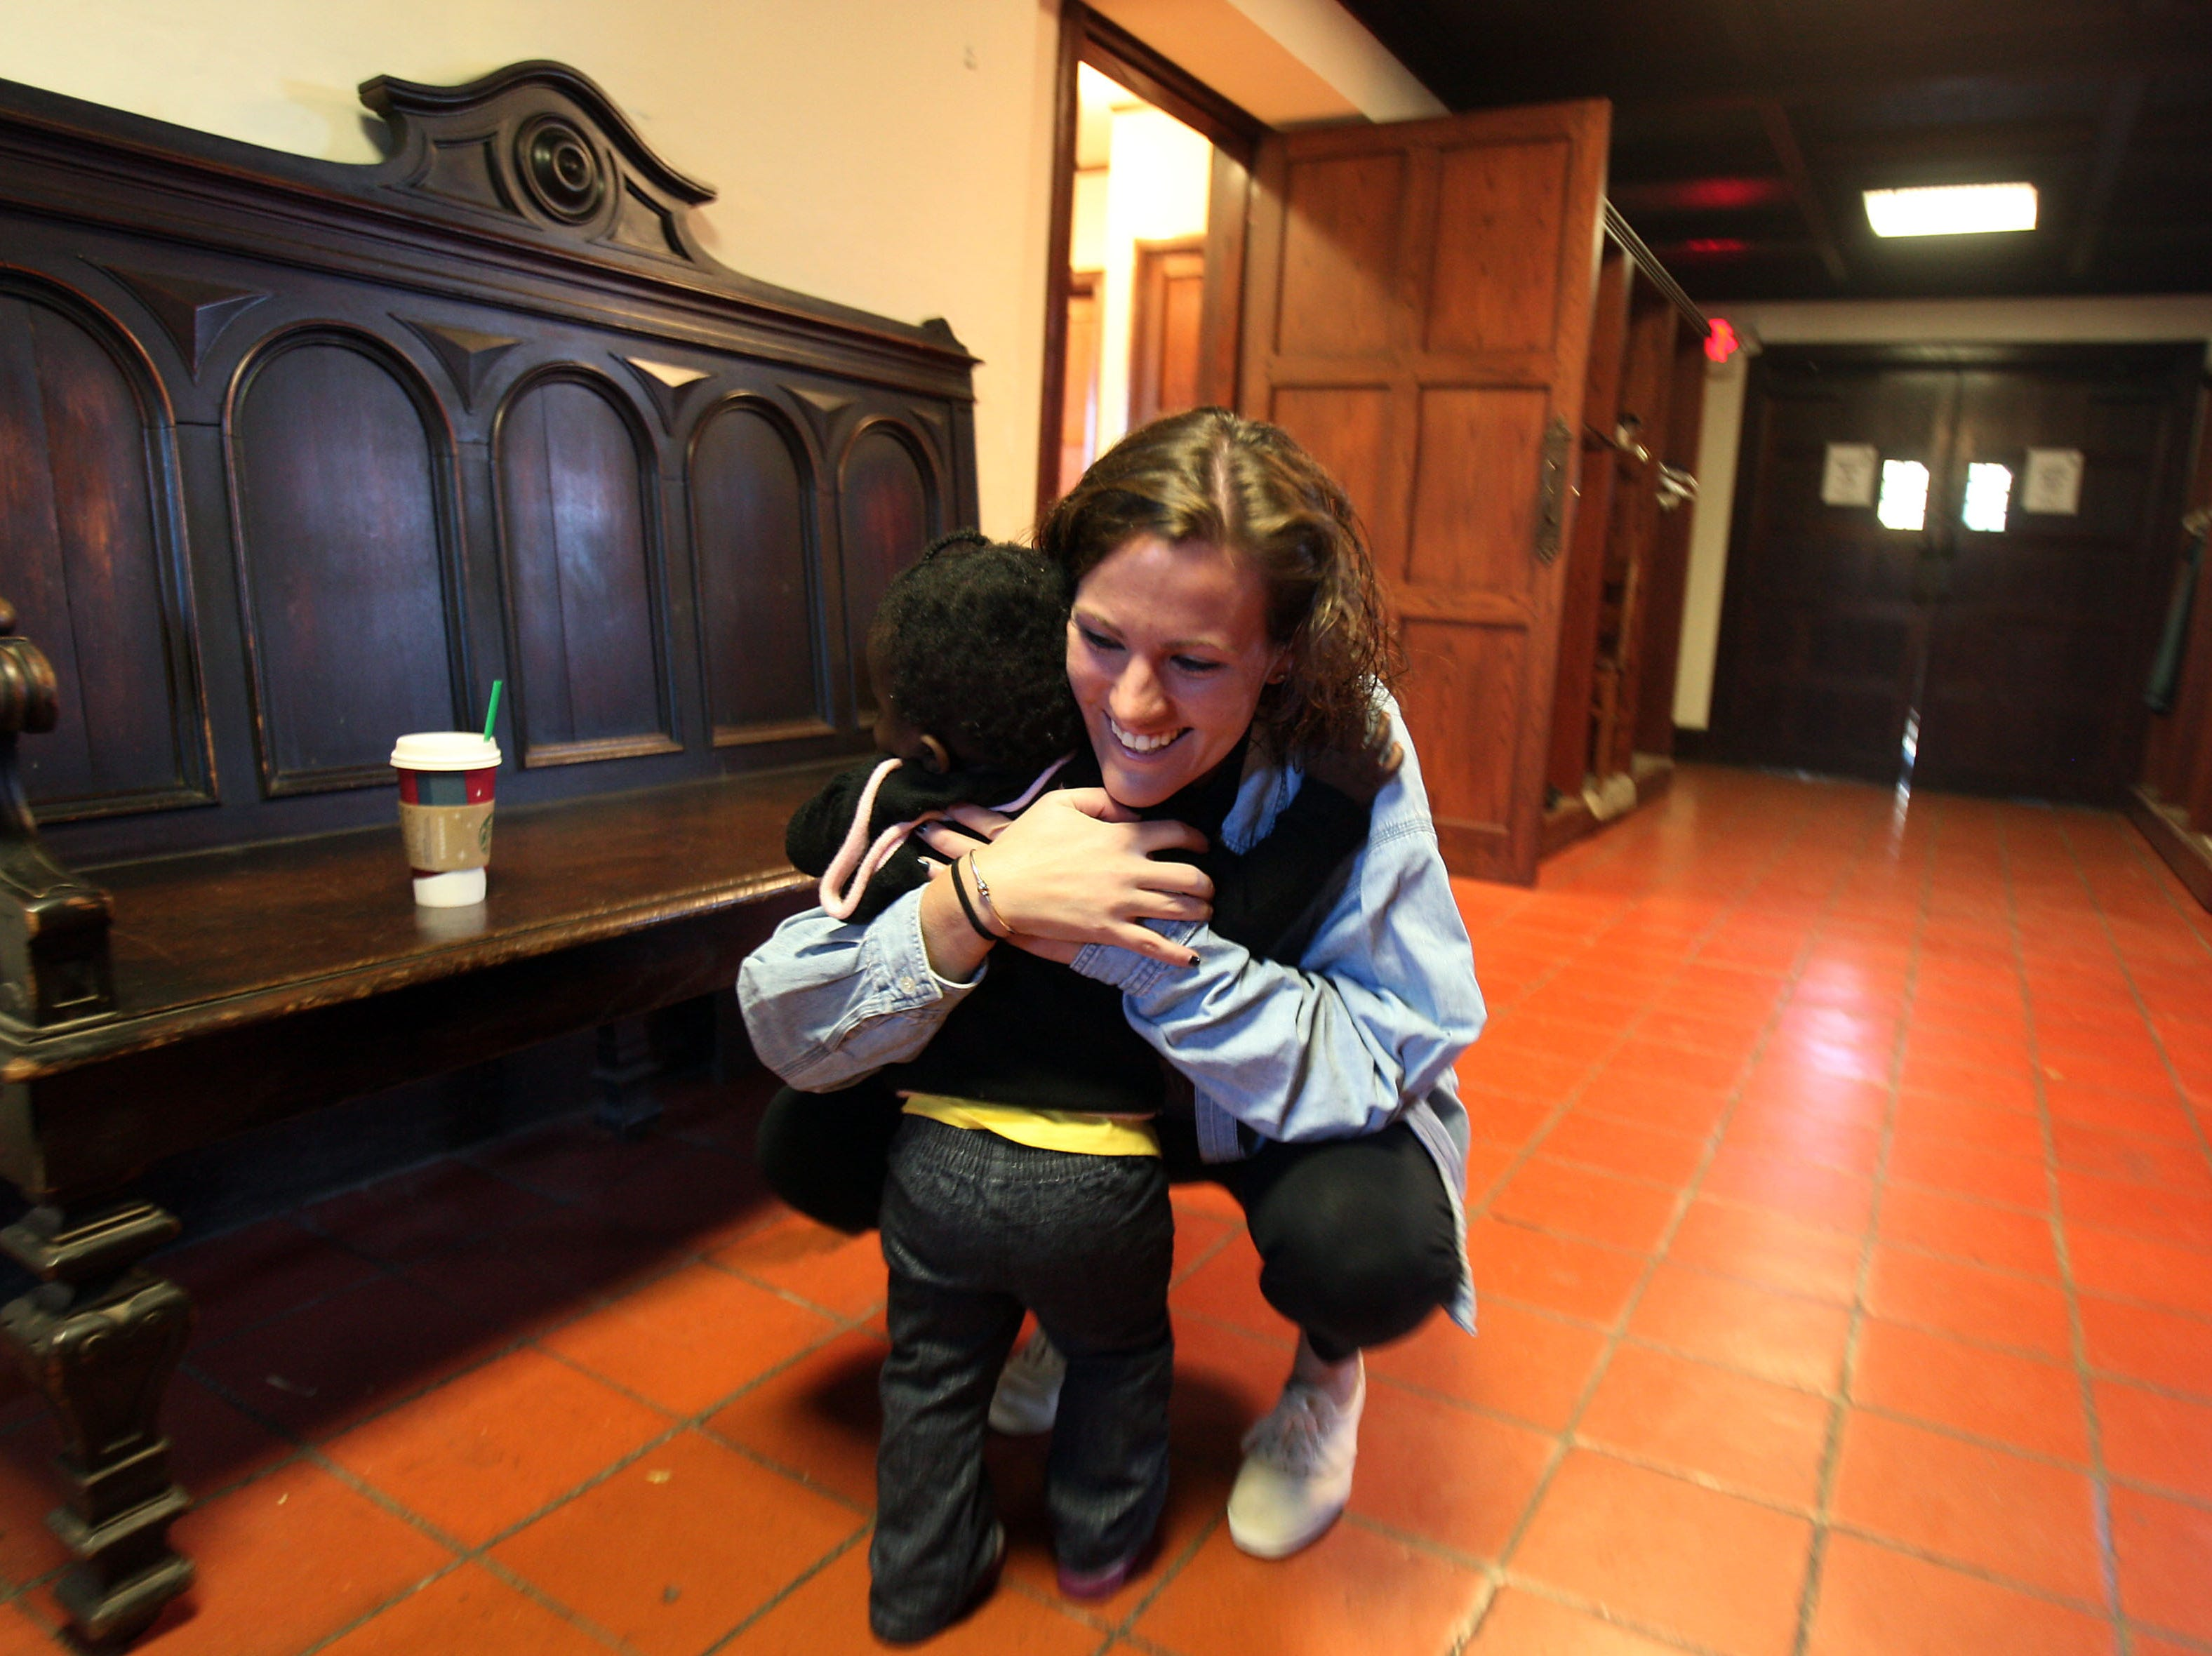 Morristown, N.J.- November 4, 2012--15-month-old Za'Inah Tolliver of Morristown, NJ gets a comforting hug from volunteer Caitlin Lynch of Randolph during breakfast offered by St Peter's Episcopal Church in Morristown, NJ as locals continue the recovery process in the aftermath of Hurricane Sandy.Bob Karp/Staff Photographer/DAILY RECORD